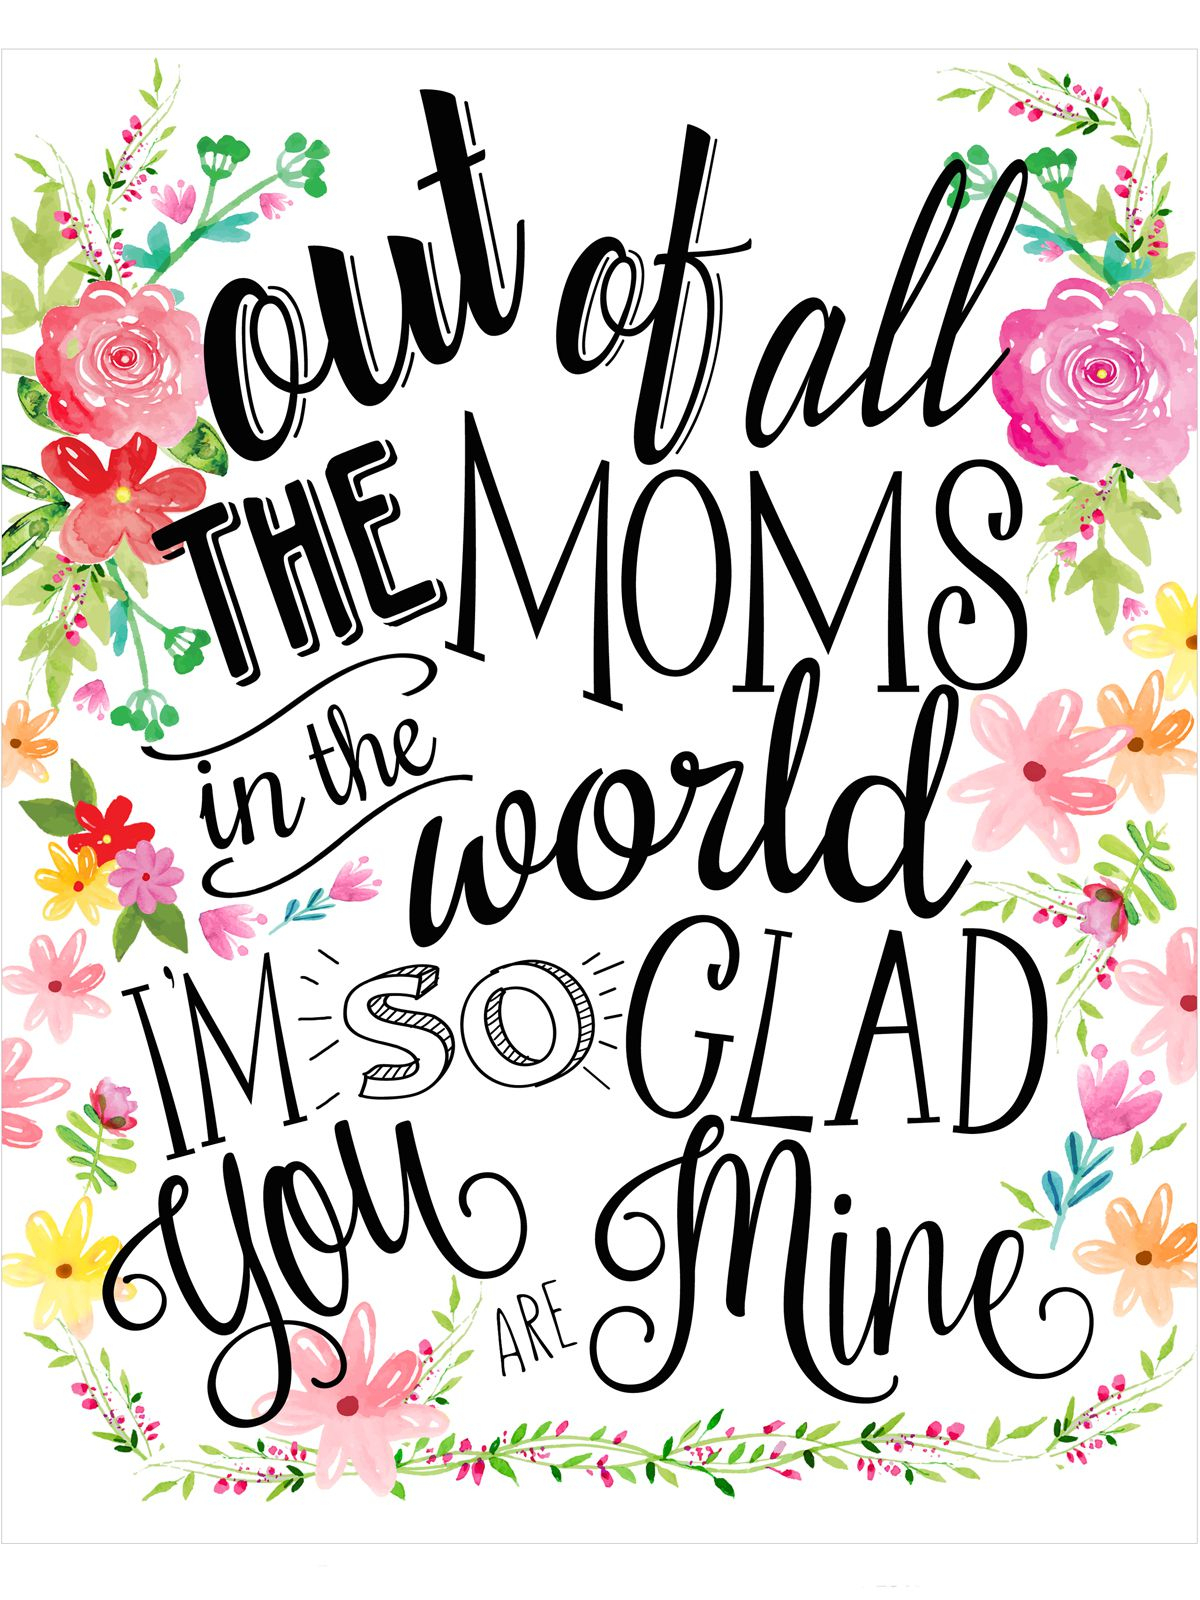 18 Mothers Day Cards - Free Printable Mother's Day Cards - Free Printable Mothers Day Cards